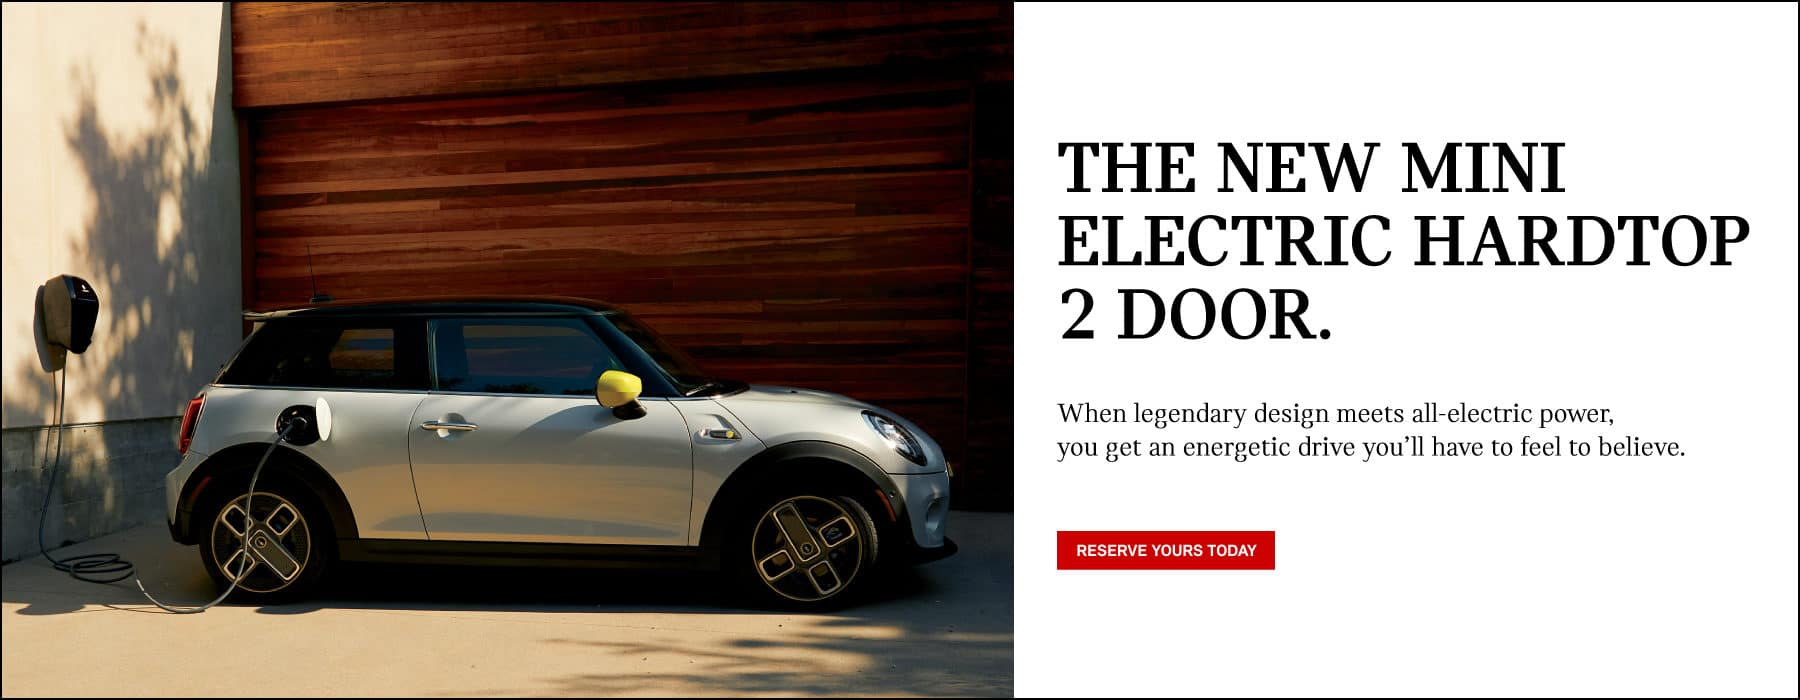 THE NEW MINI ELECTRIC HARDTOP 2 DOOR. When legendary design makes all electric power, you get an energetic drive that you'll have to feel to believe. Click to reserve.